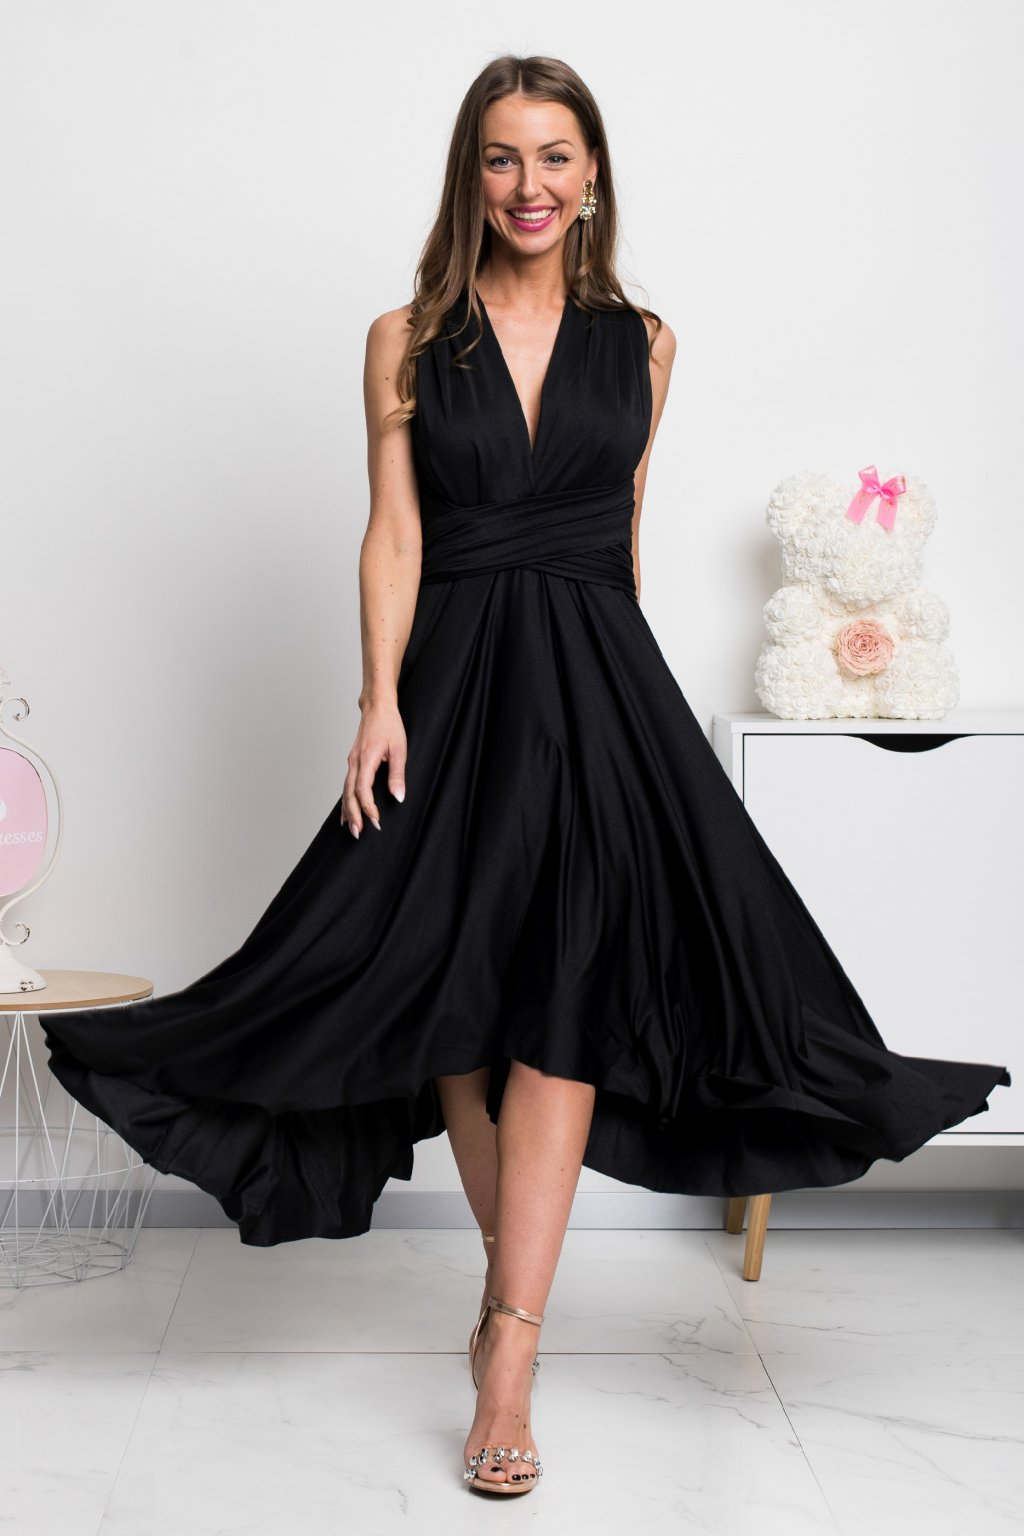 Black tie midi dress